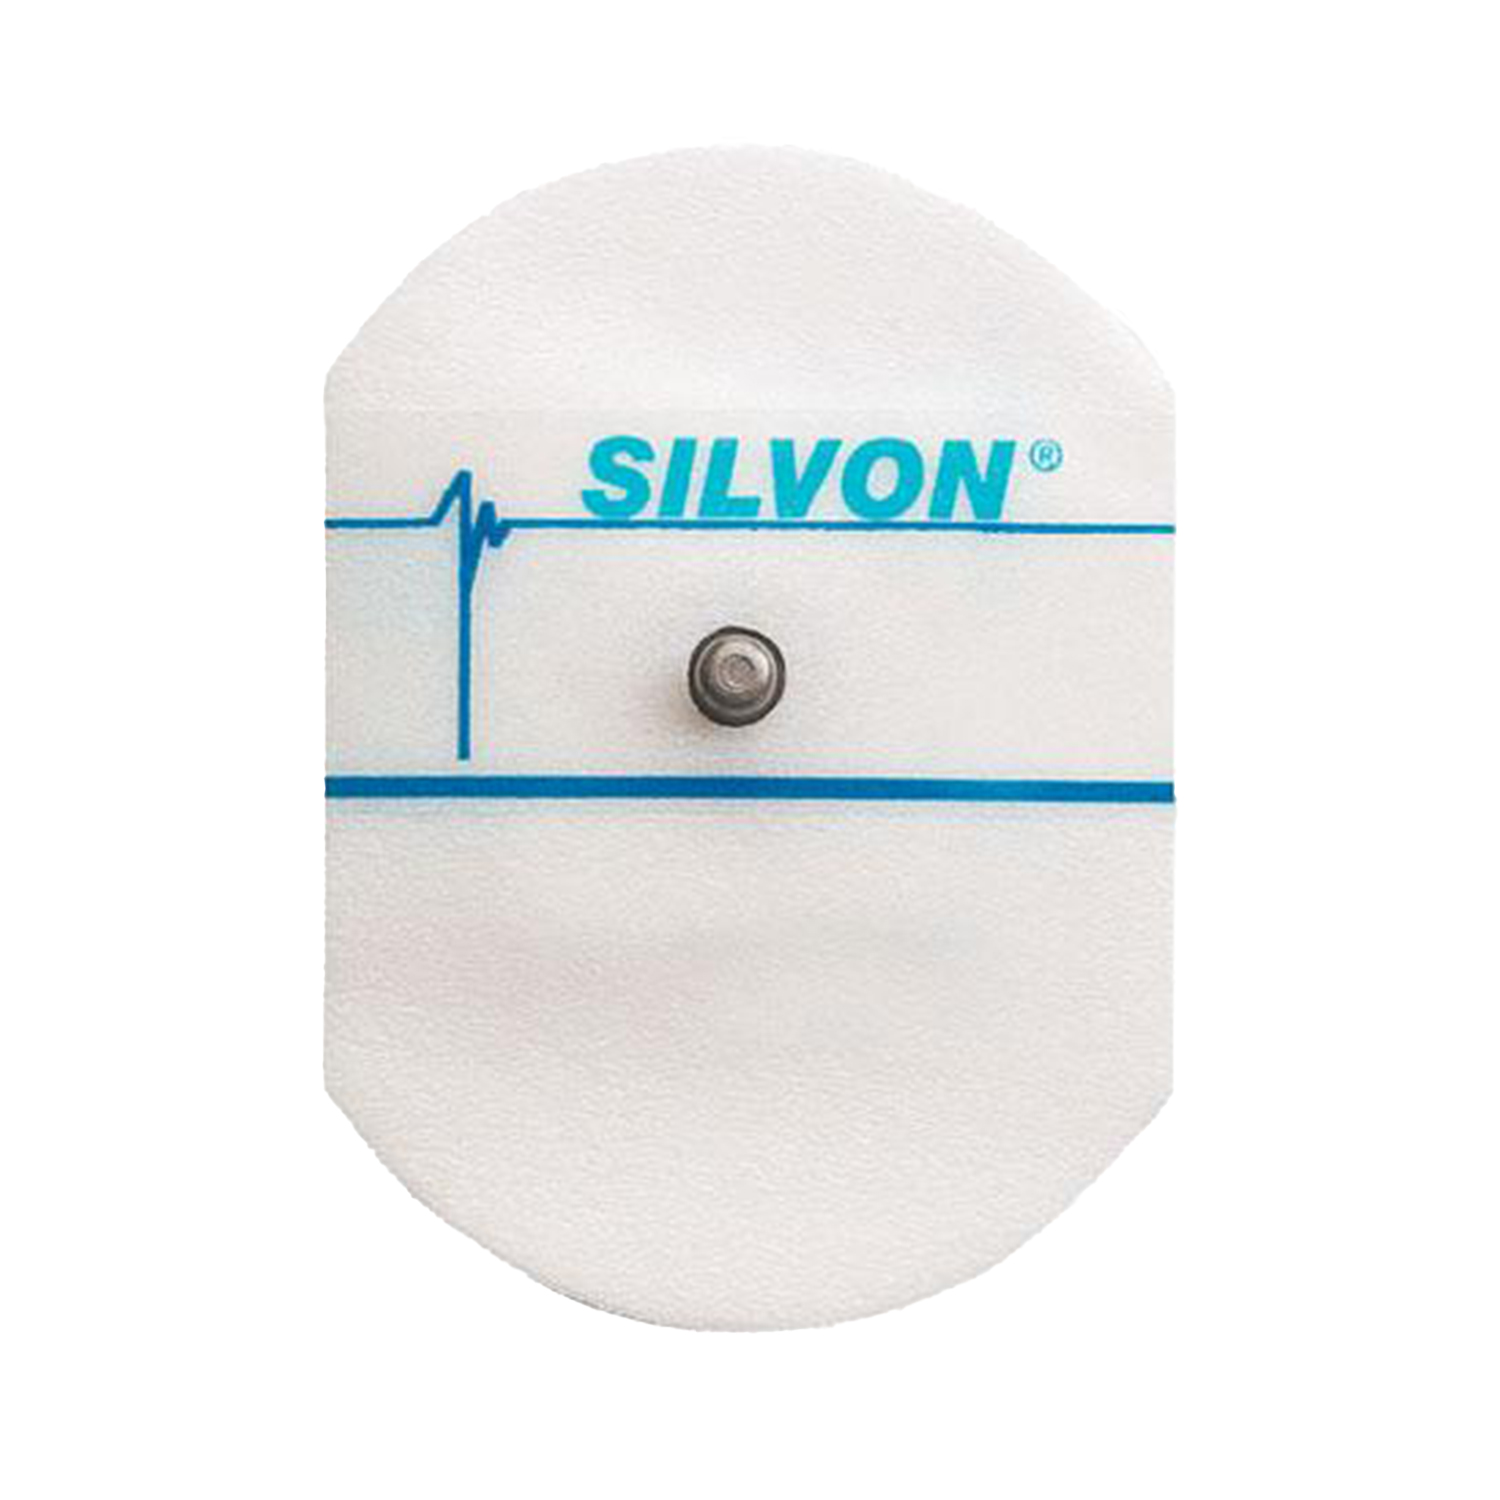 ConMed: Adult Foam ClearSite® Conductive Adhesive Gel Electrodes - Latex Free - Silvon®